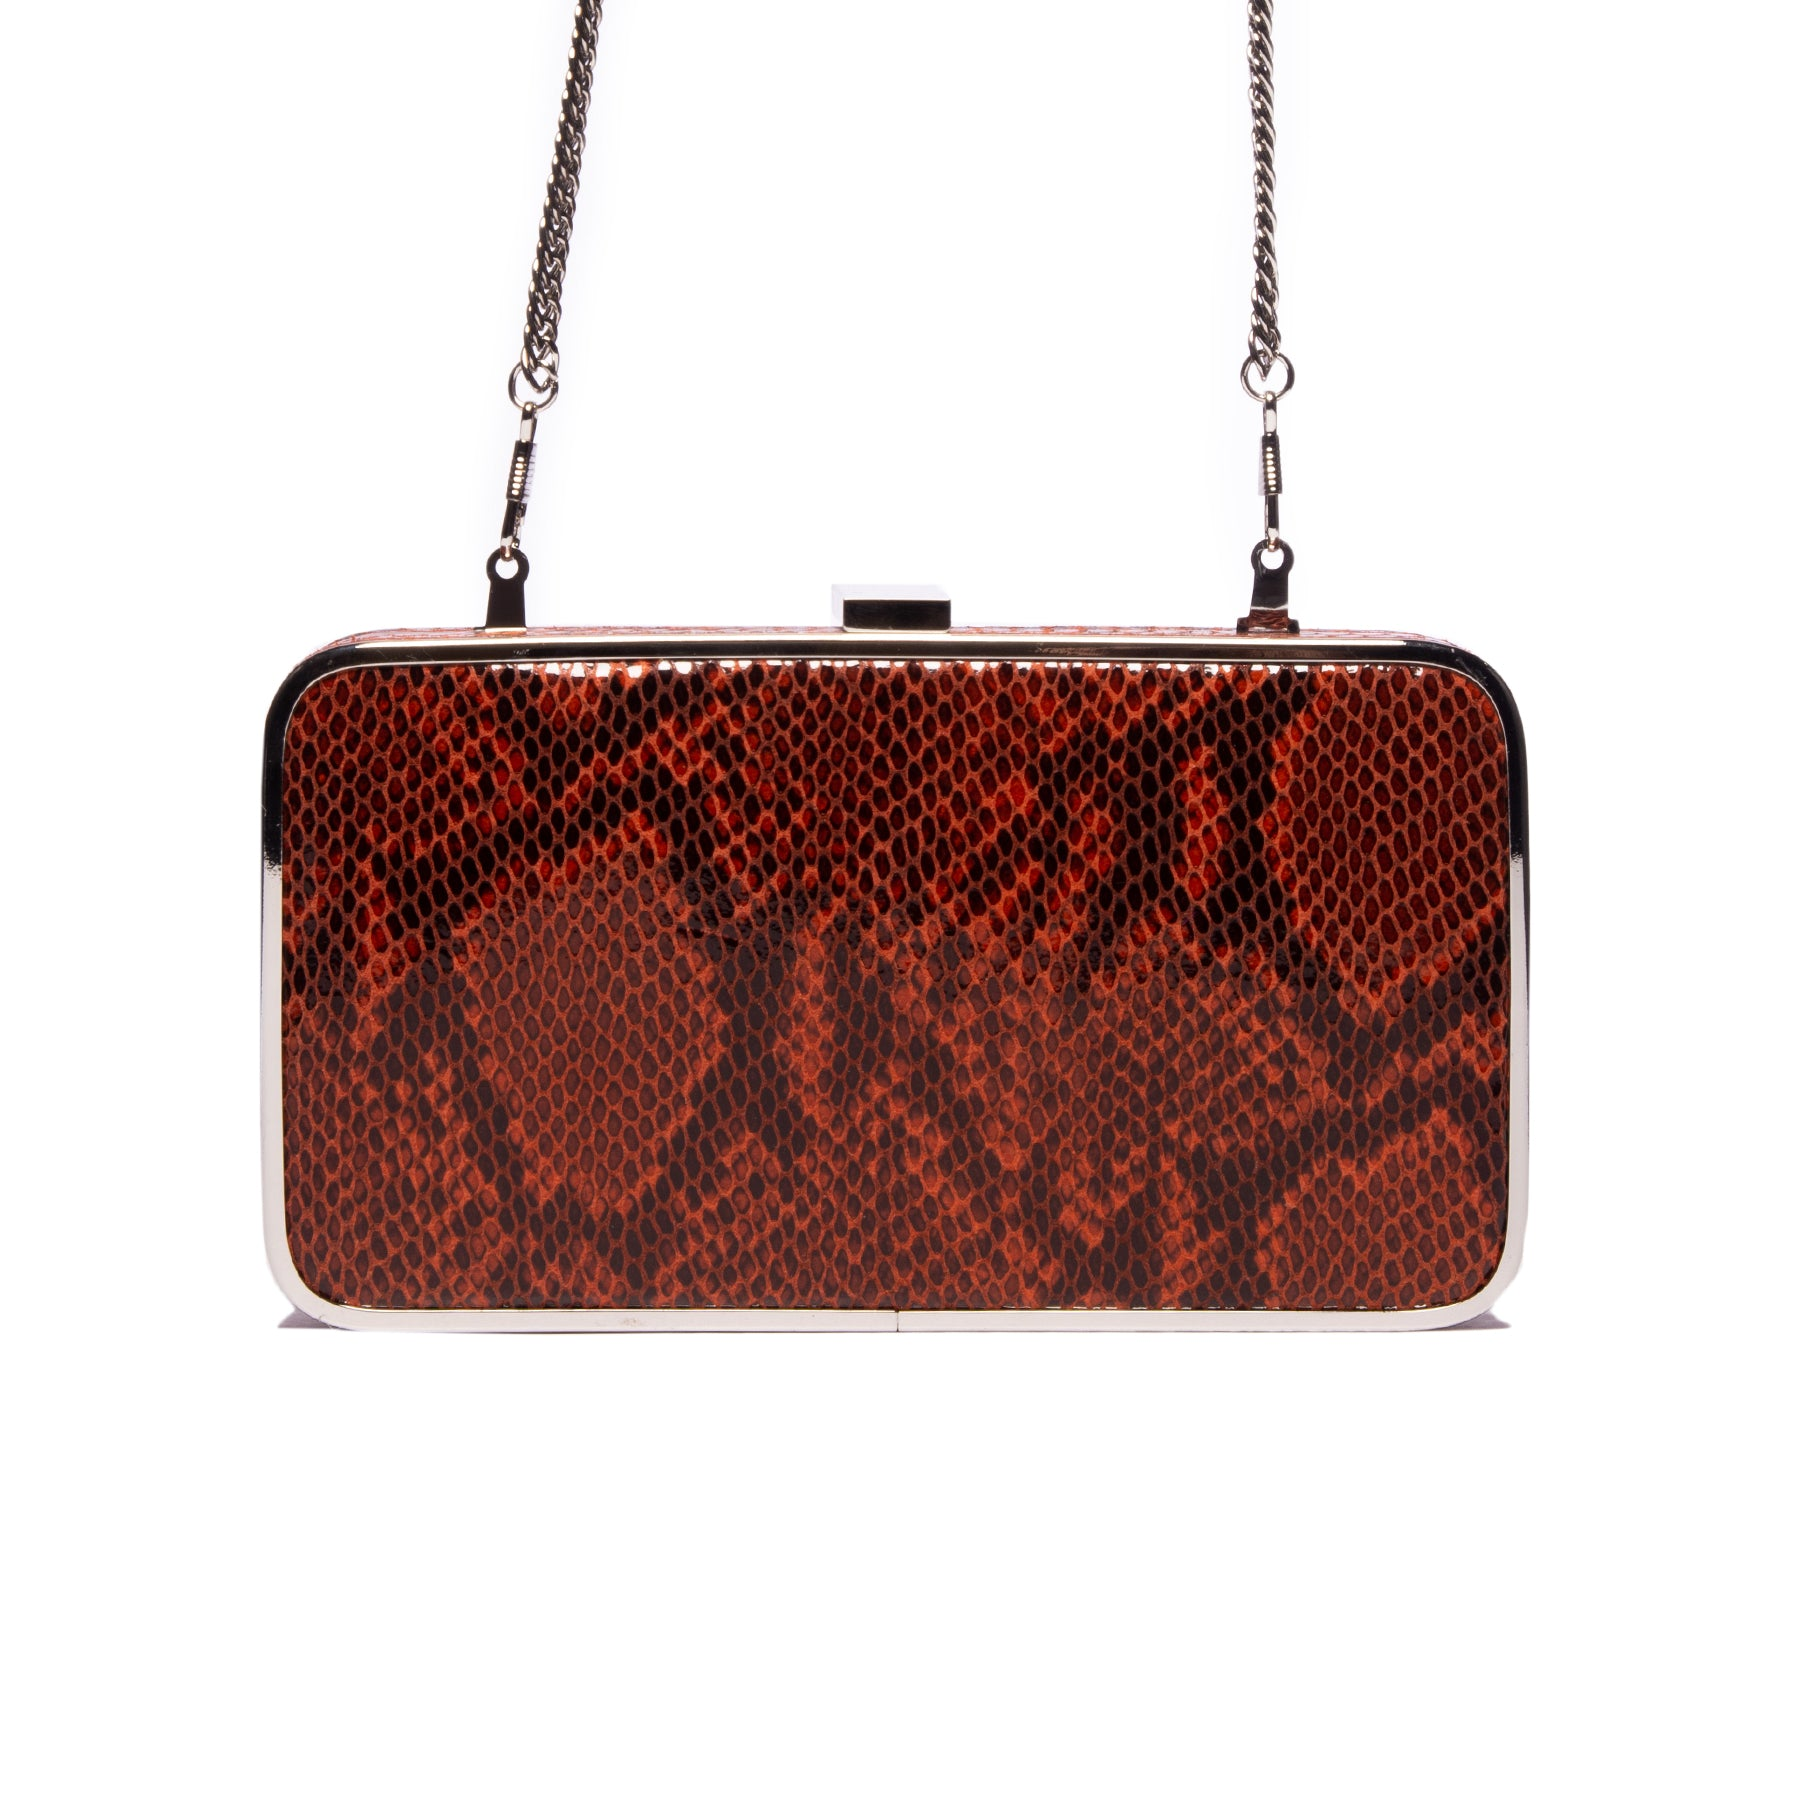 Thais Red Snake Leather Clutch